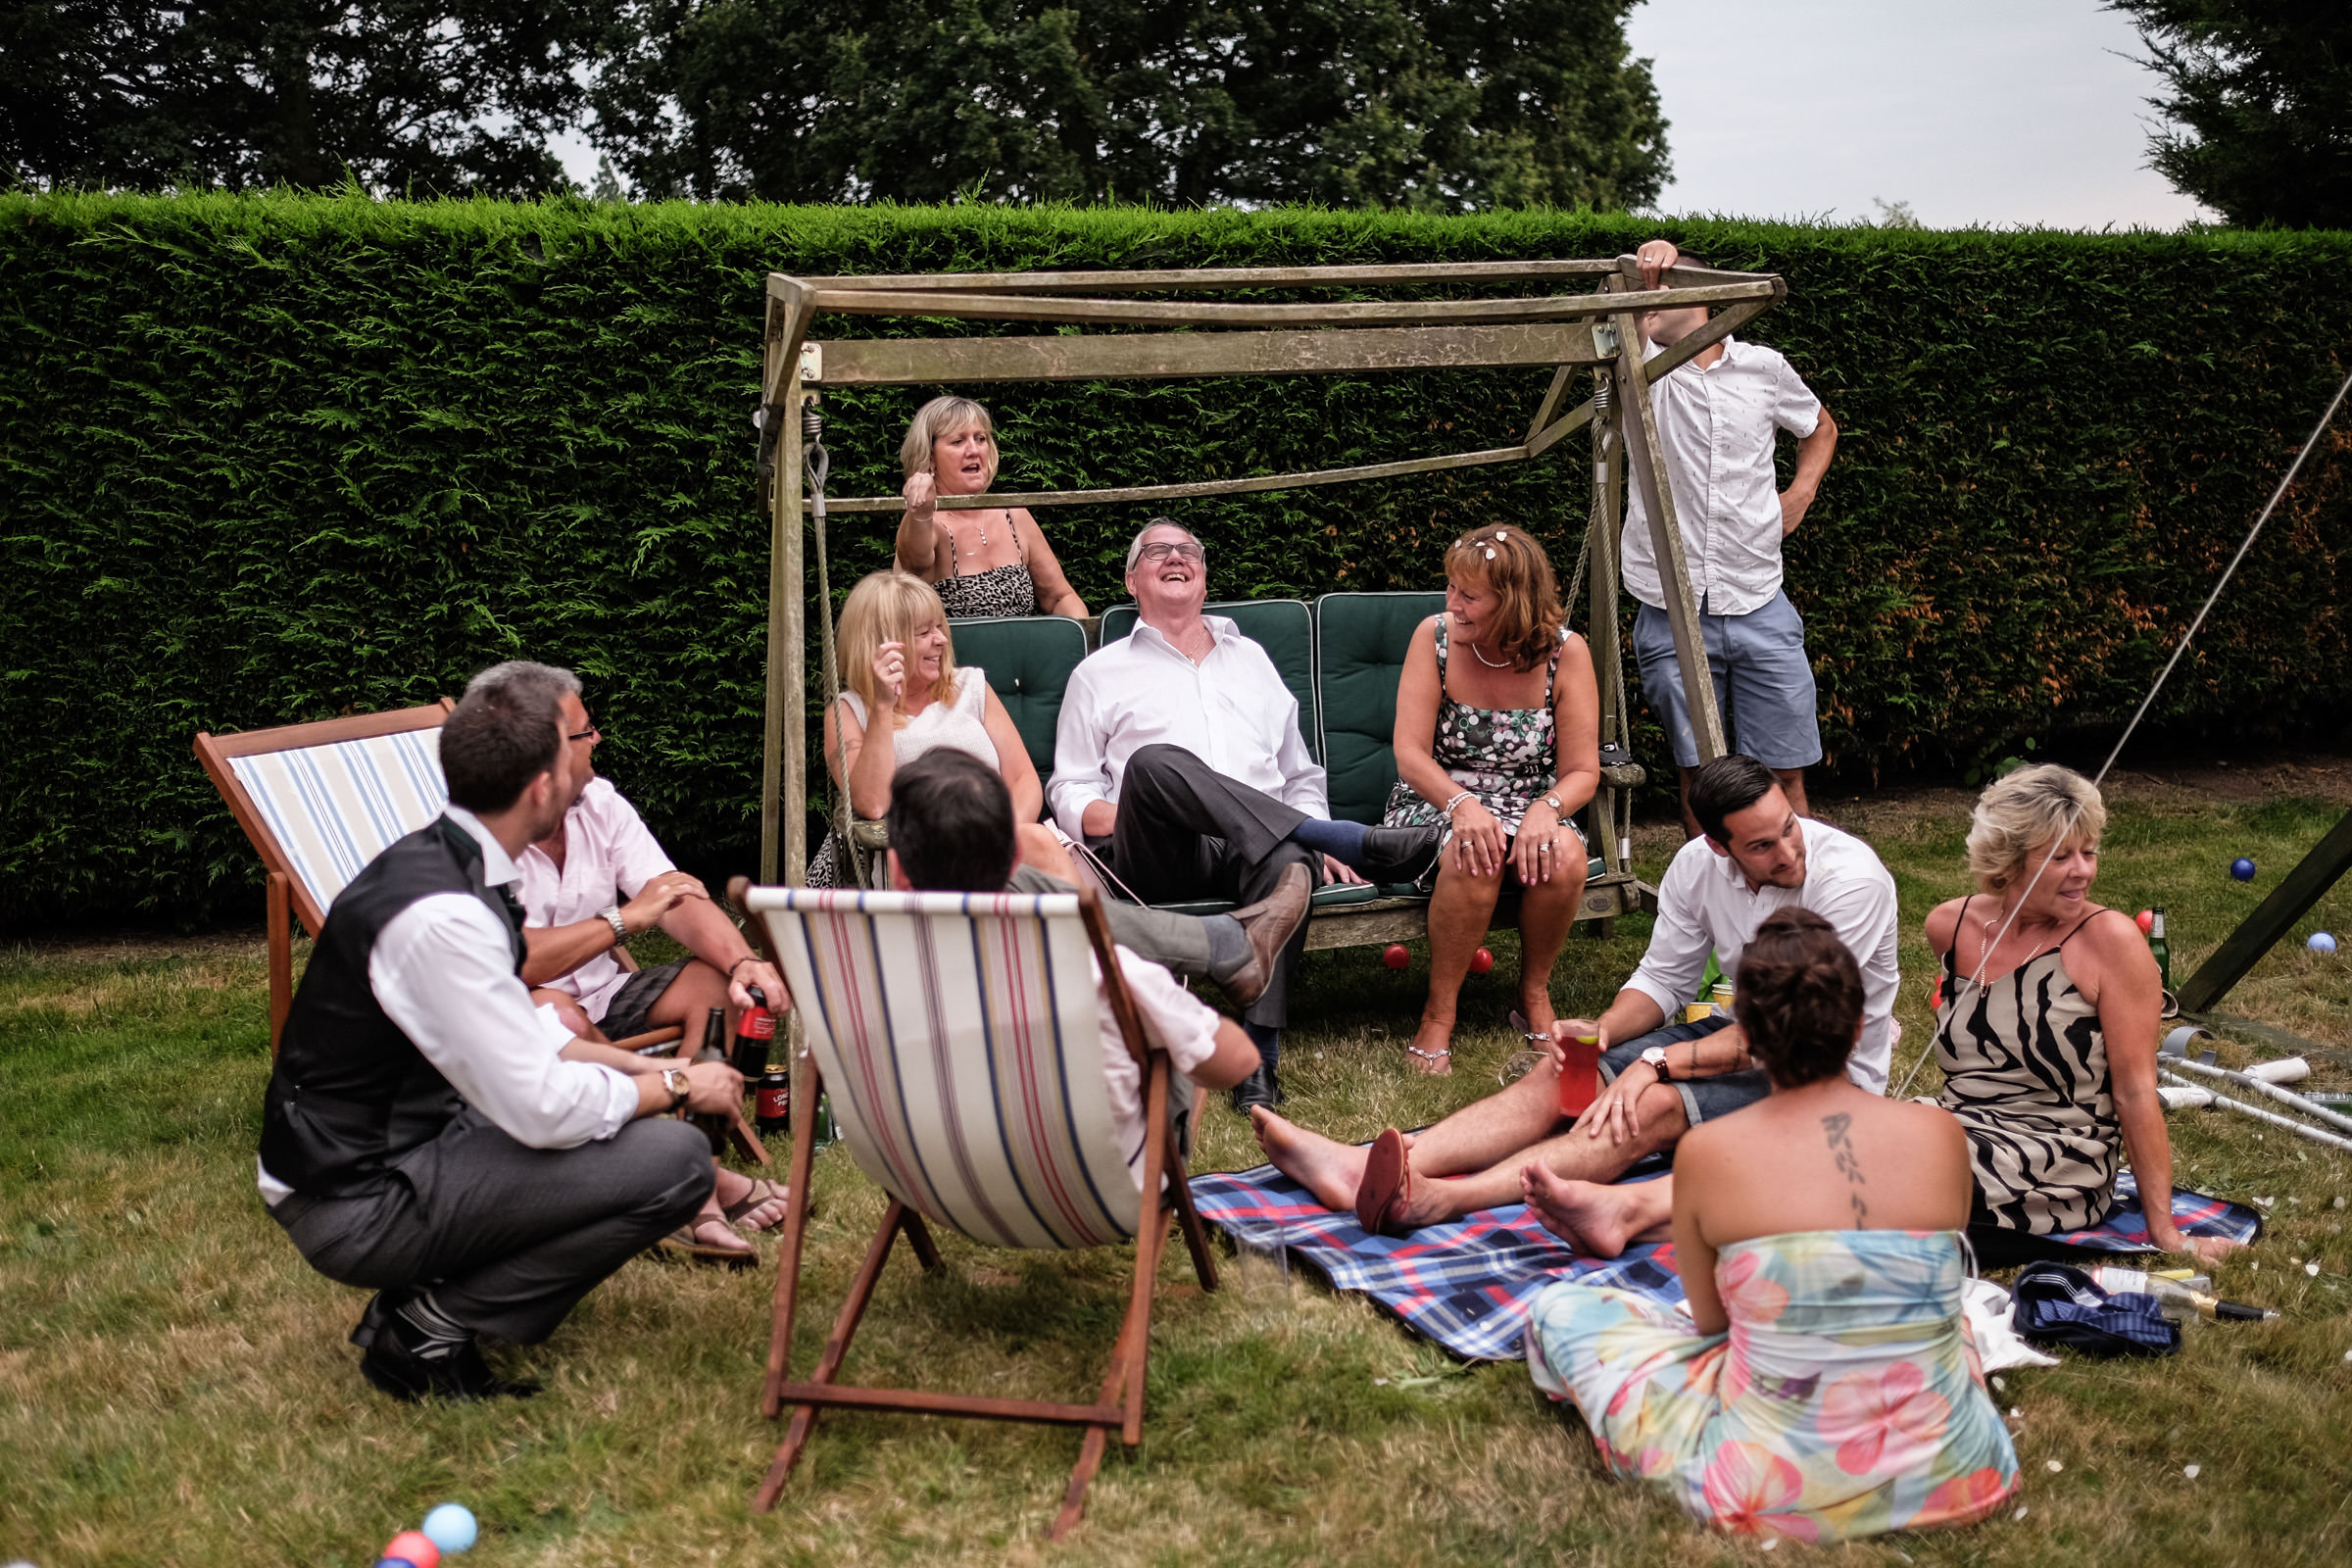 Wedding+at+Lytha+Hill+in+Haslemere+023.jpg